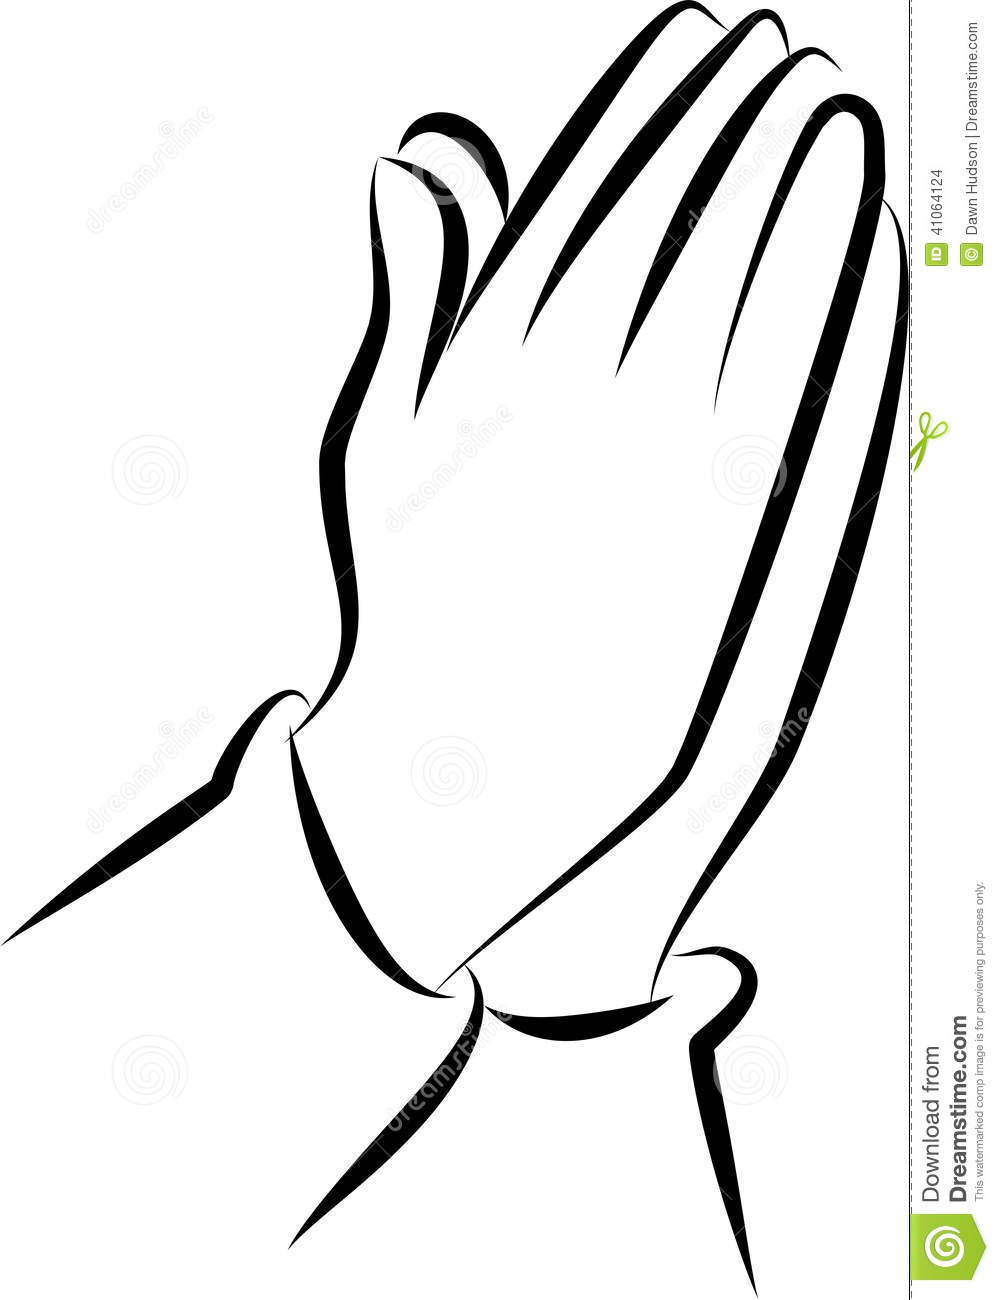 ... Praying Hands Clipart Black And White | Clipart Panda - Free Clipart